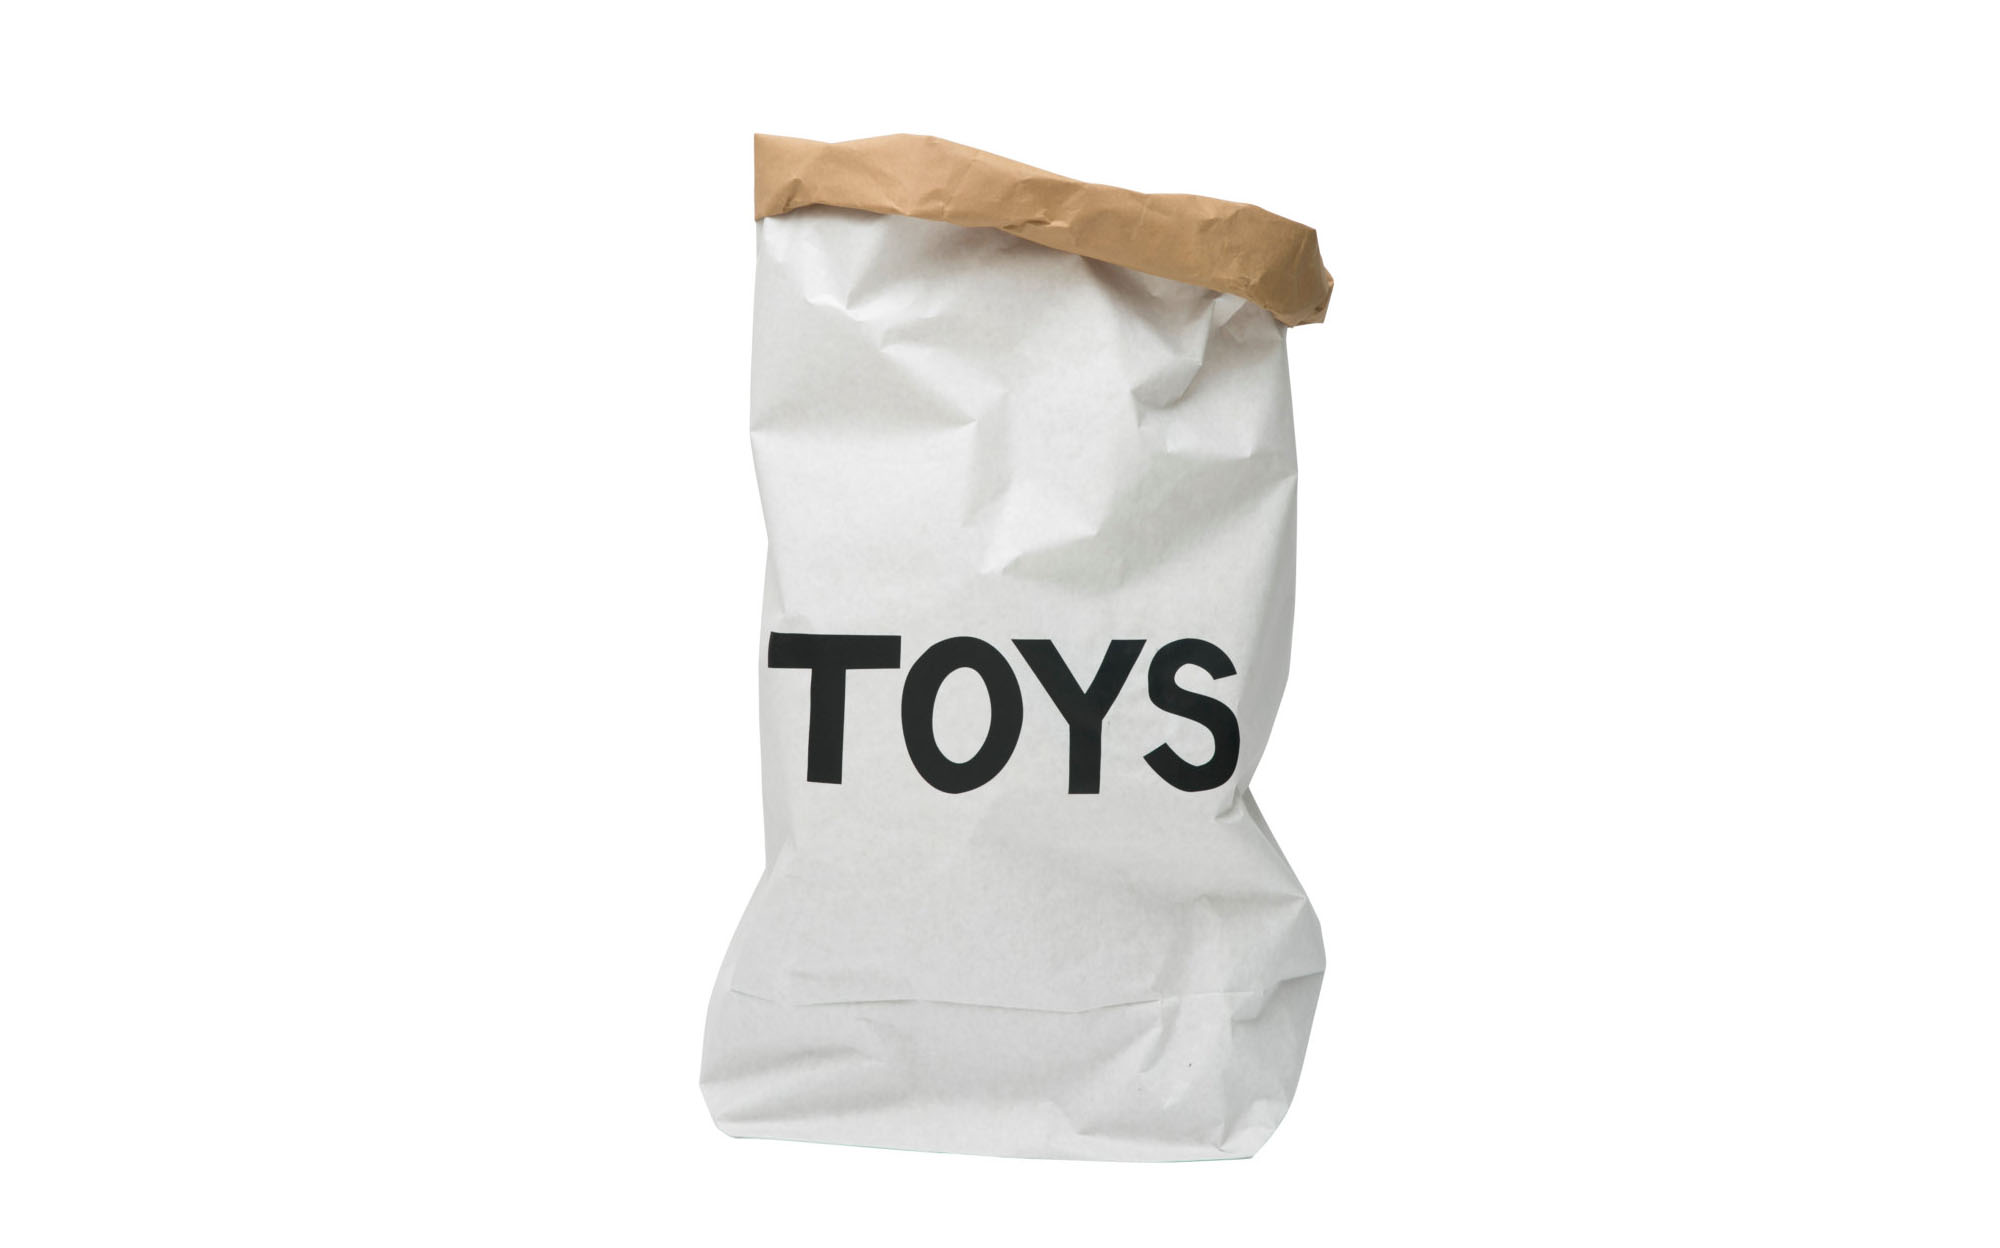 Tellkiddo TOYS small paper bag storage of toys books or teddy bears